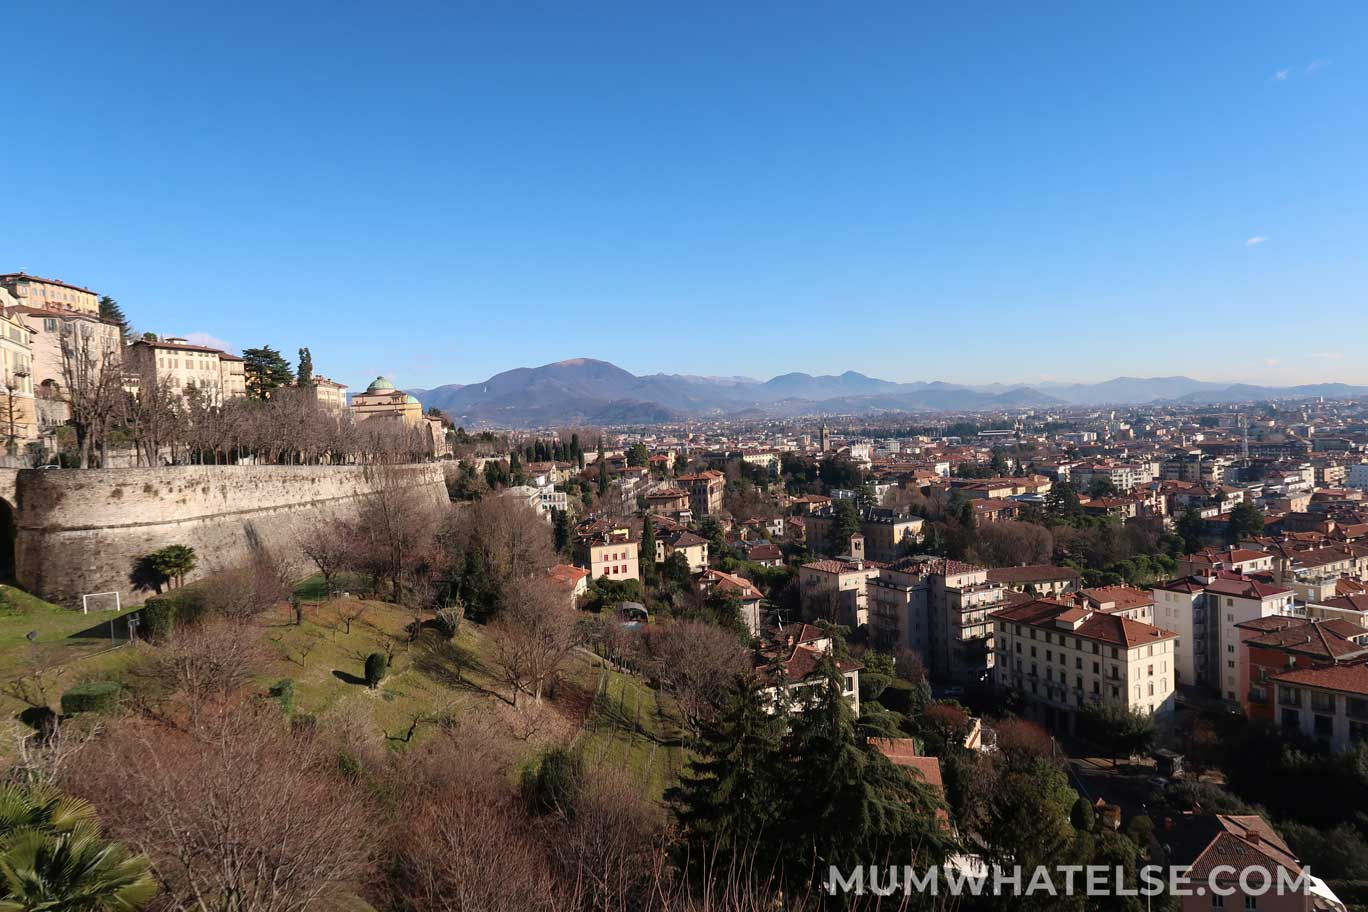 Panorama with the walls of Bergamo and the mountains on a clear day